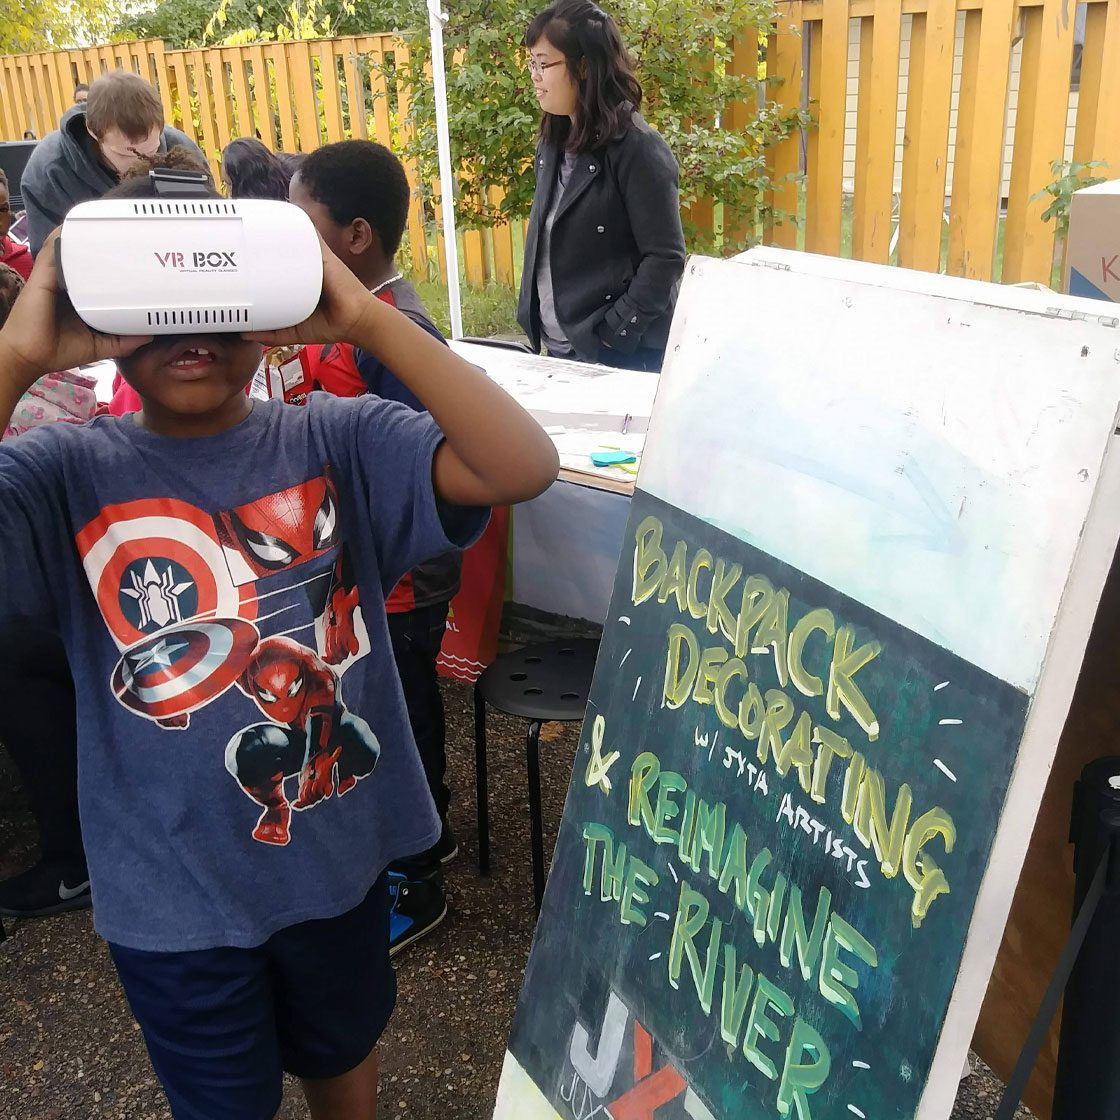 A young person using a VR headset